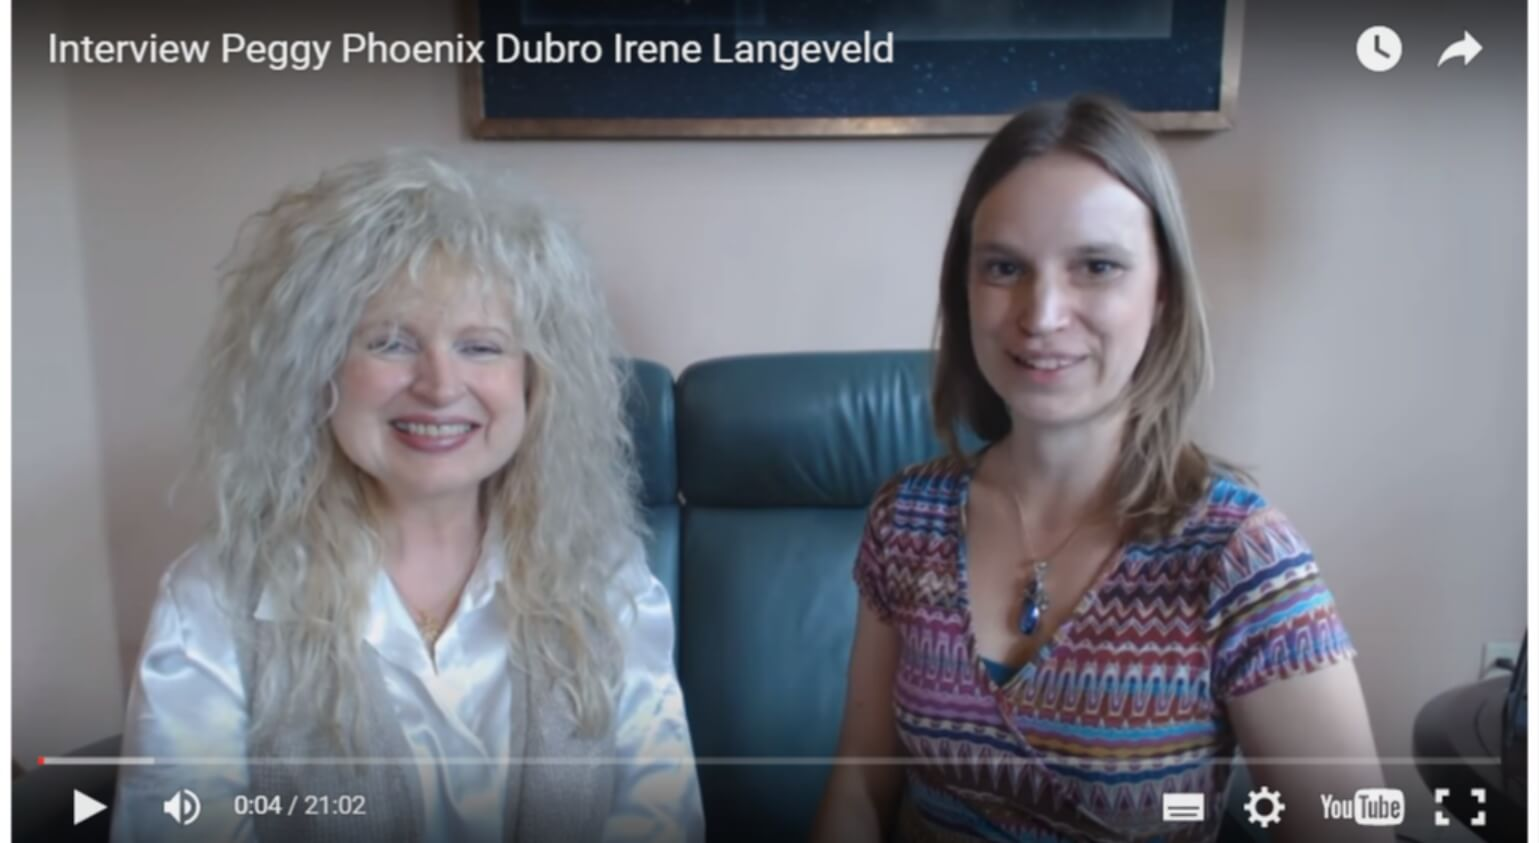 Interview & Energy Exercise from Peggy Phoenix Dubro